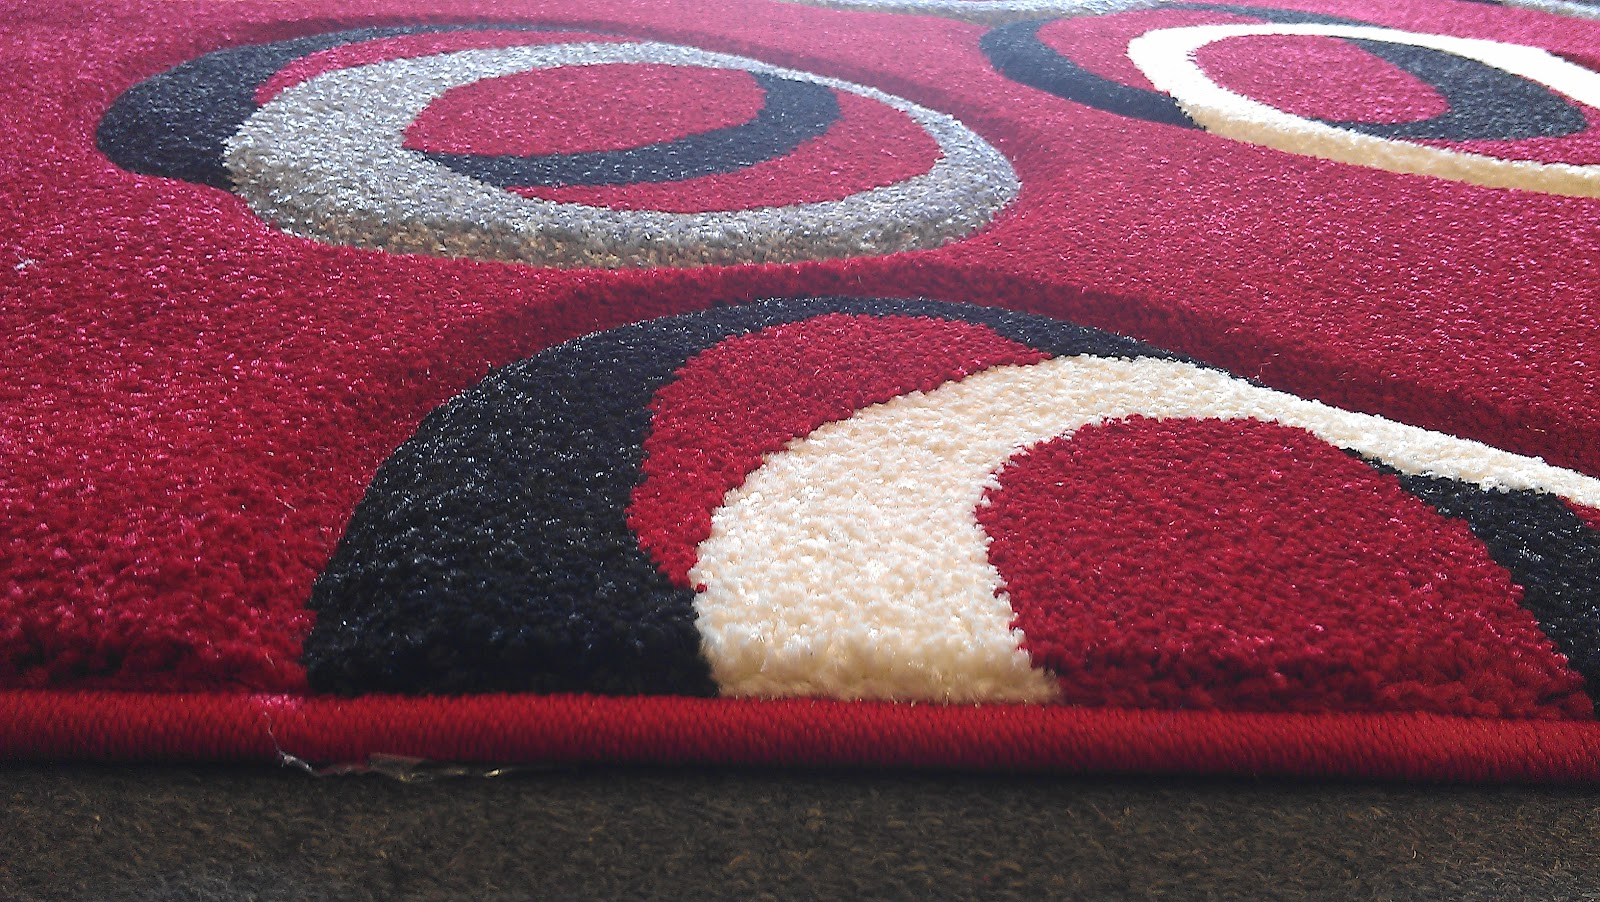 Large Black And White Area Rugs: Large Area Rug Red, Black, White, Grey Circles 5ft 2in X